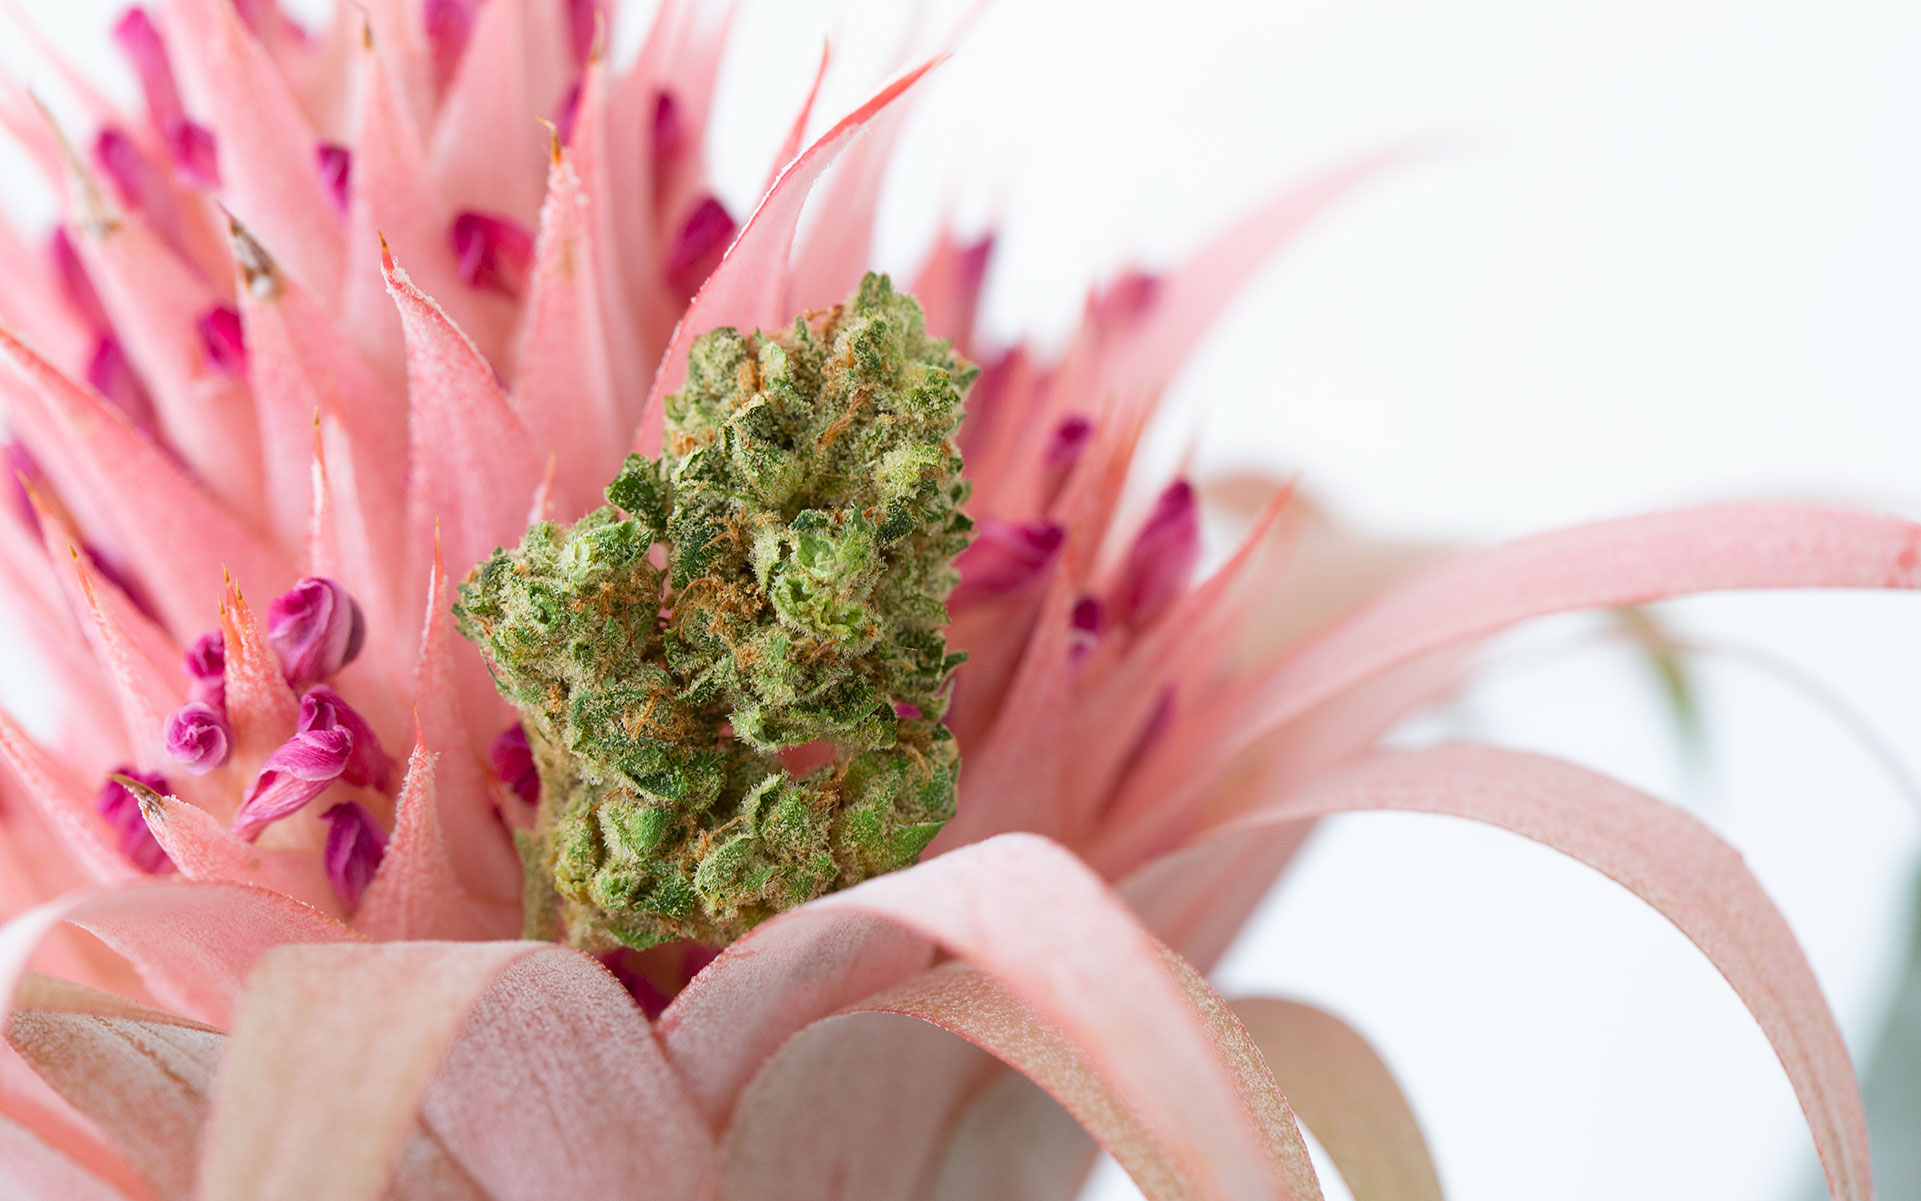 Which Terpenes Are Found in 'Haze' Cannabis Strains?